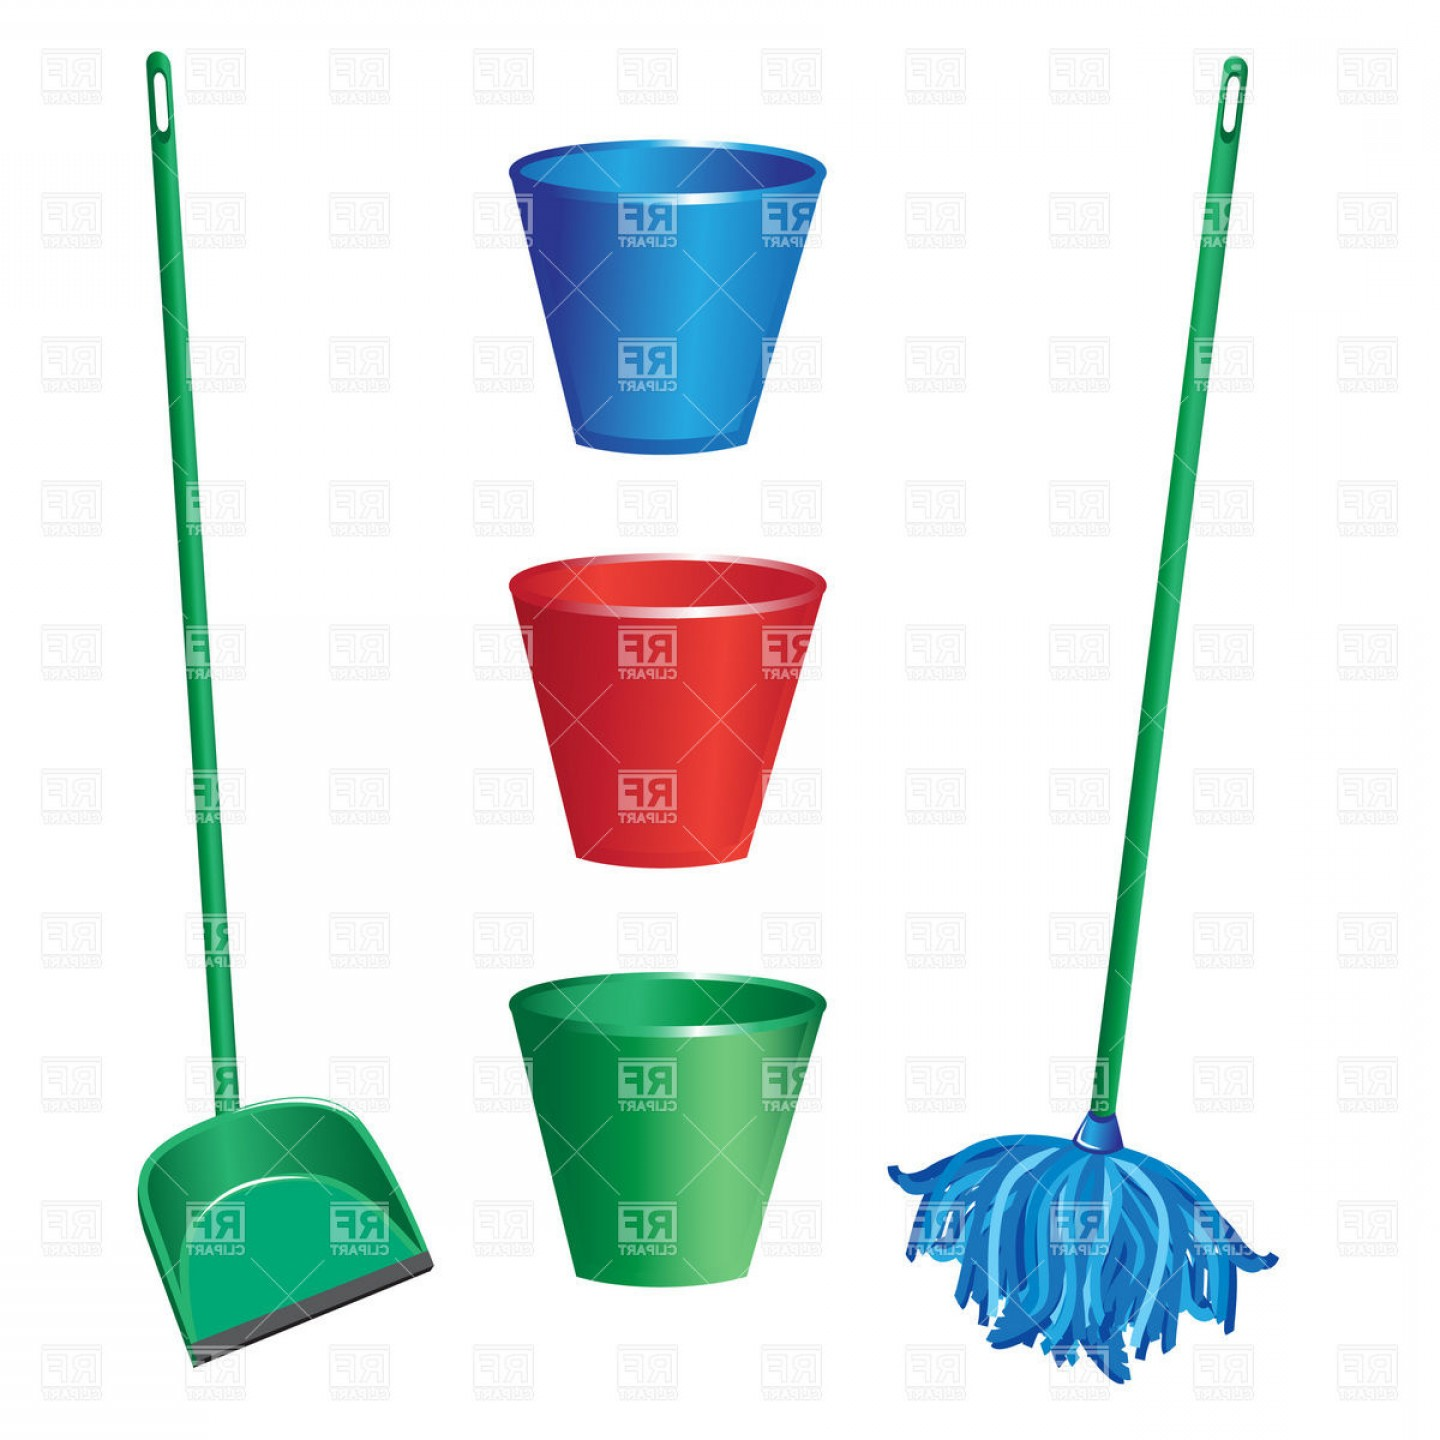 Mop And Bucket Clip Art Vector: Floor Cleaning Tools Swab Dustpan And Plastic Bucket Vector Clipart